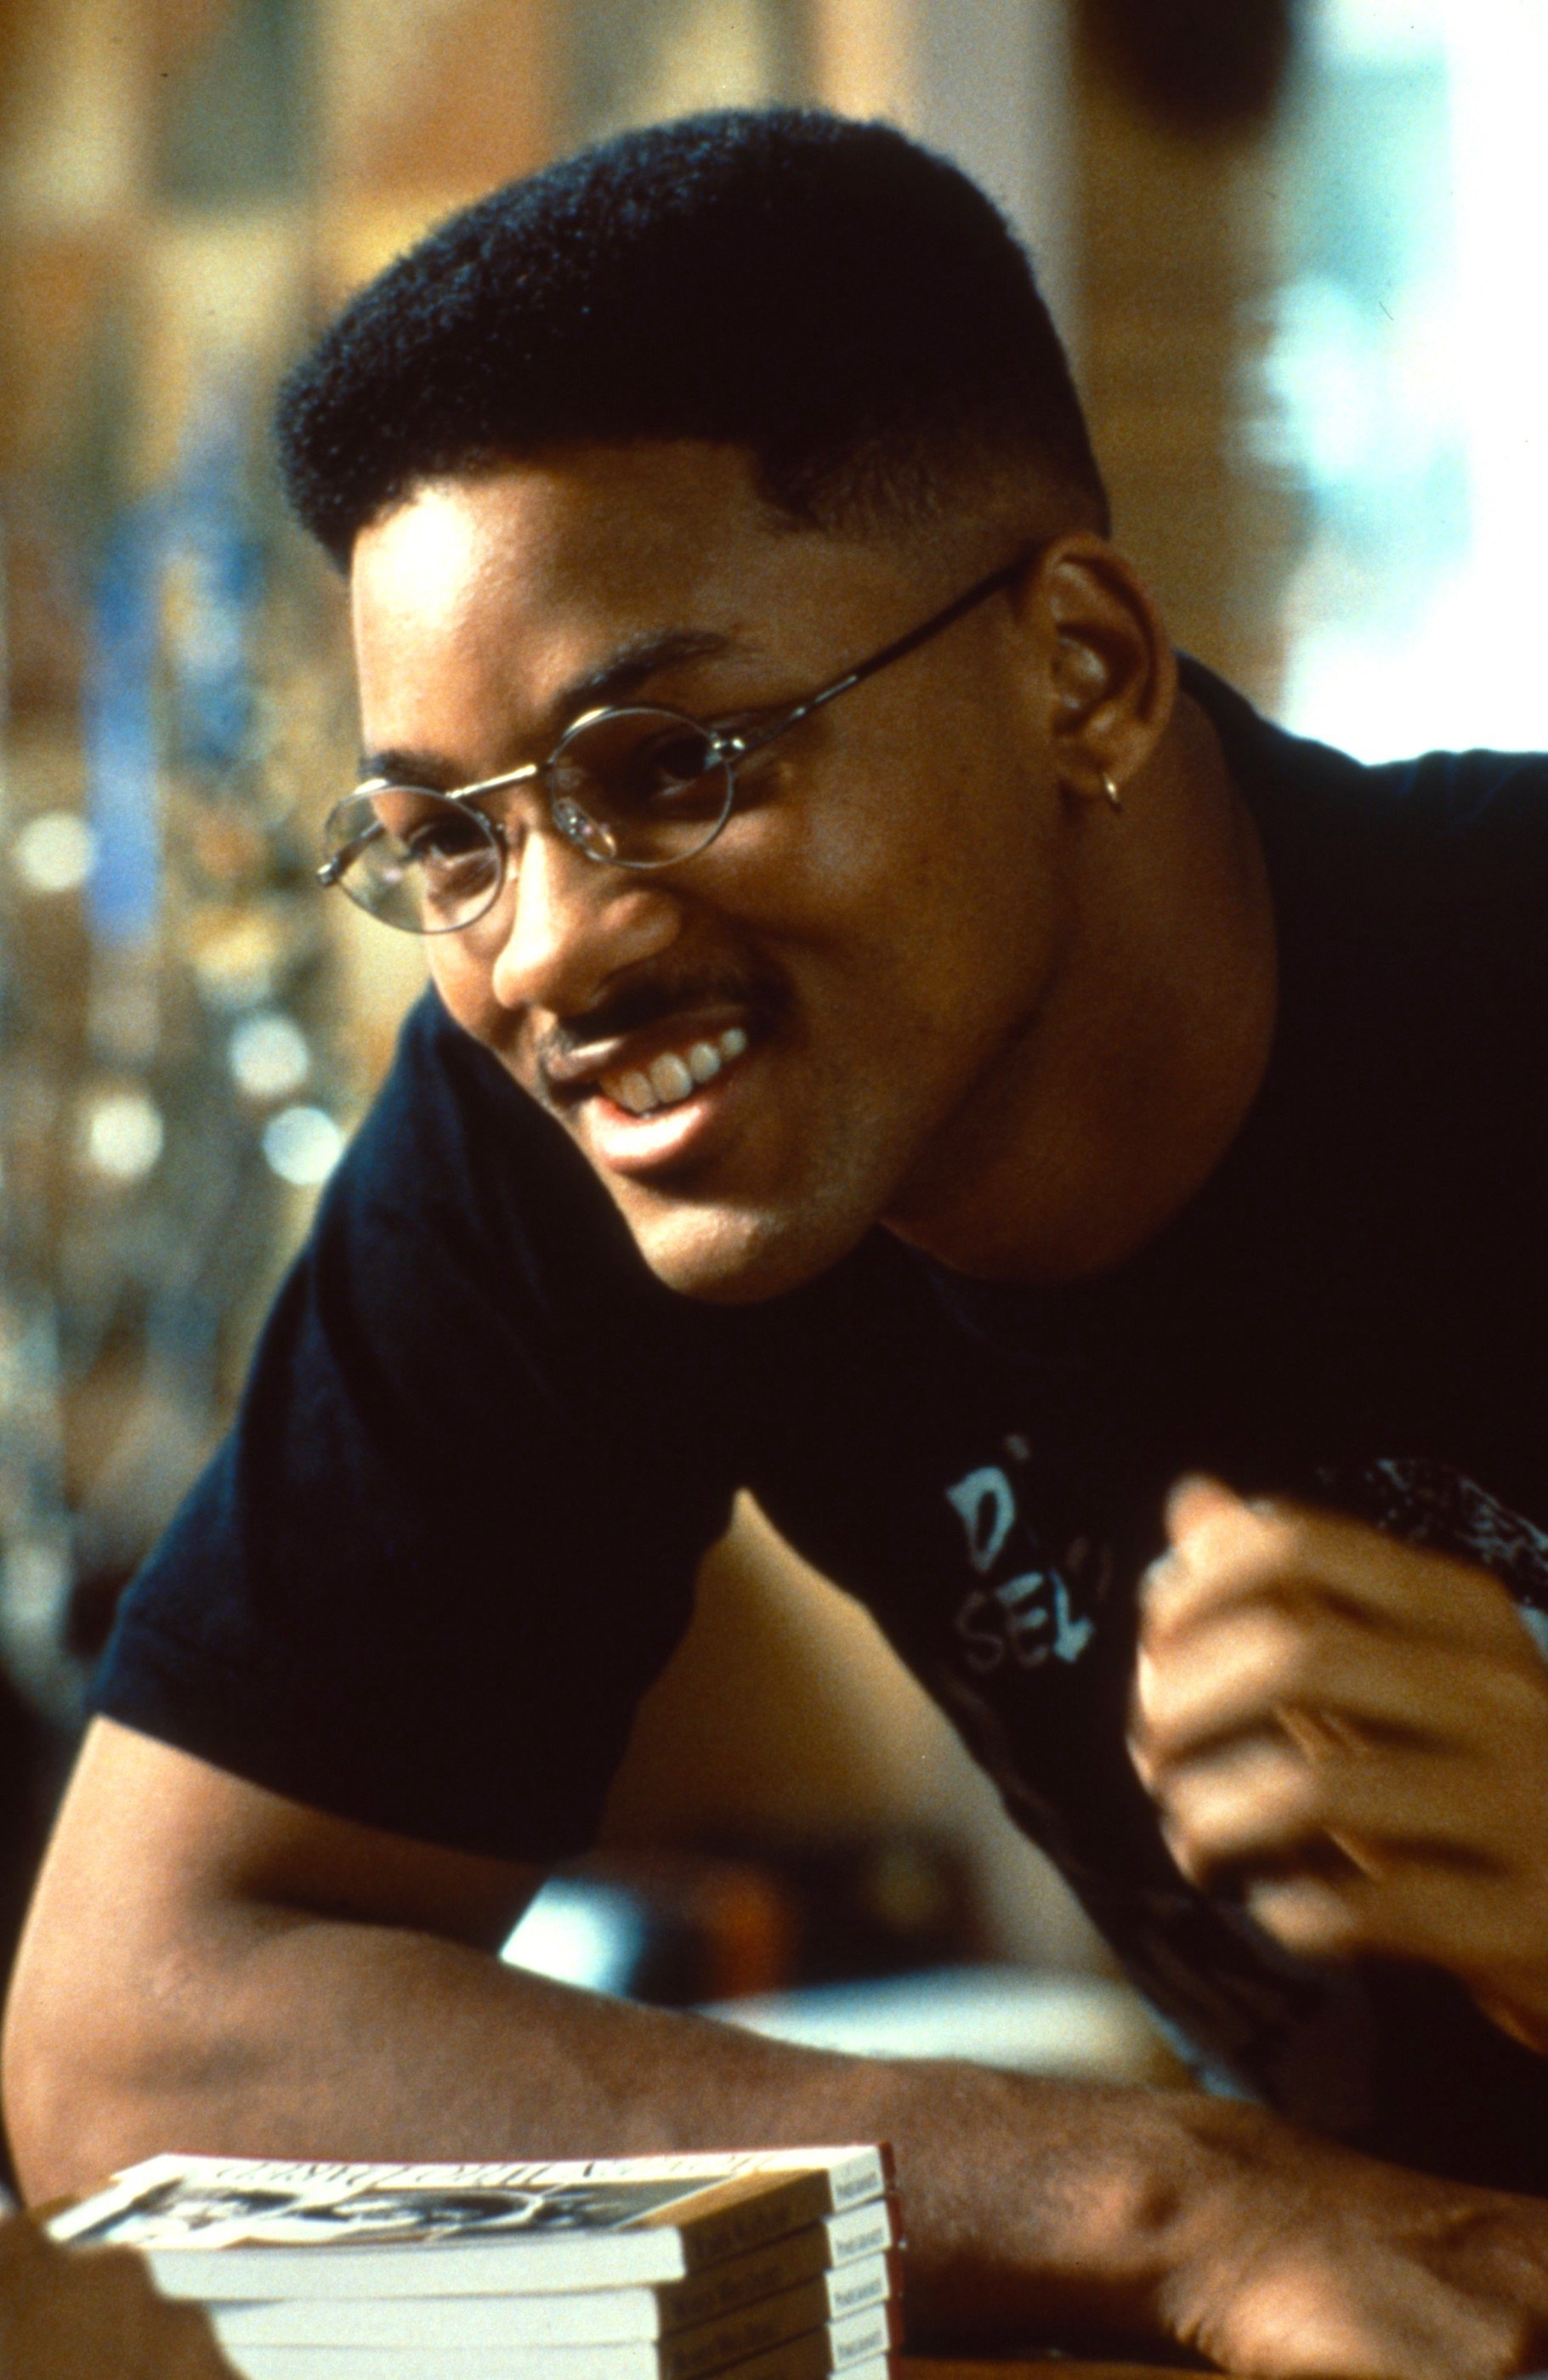 Will Smith wearing glasses, leaning on a table with a stack of books